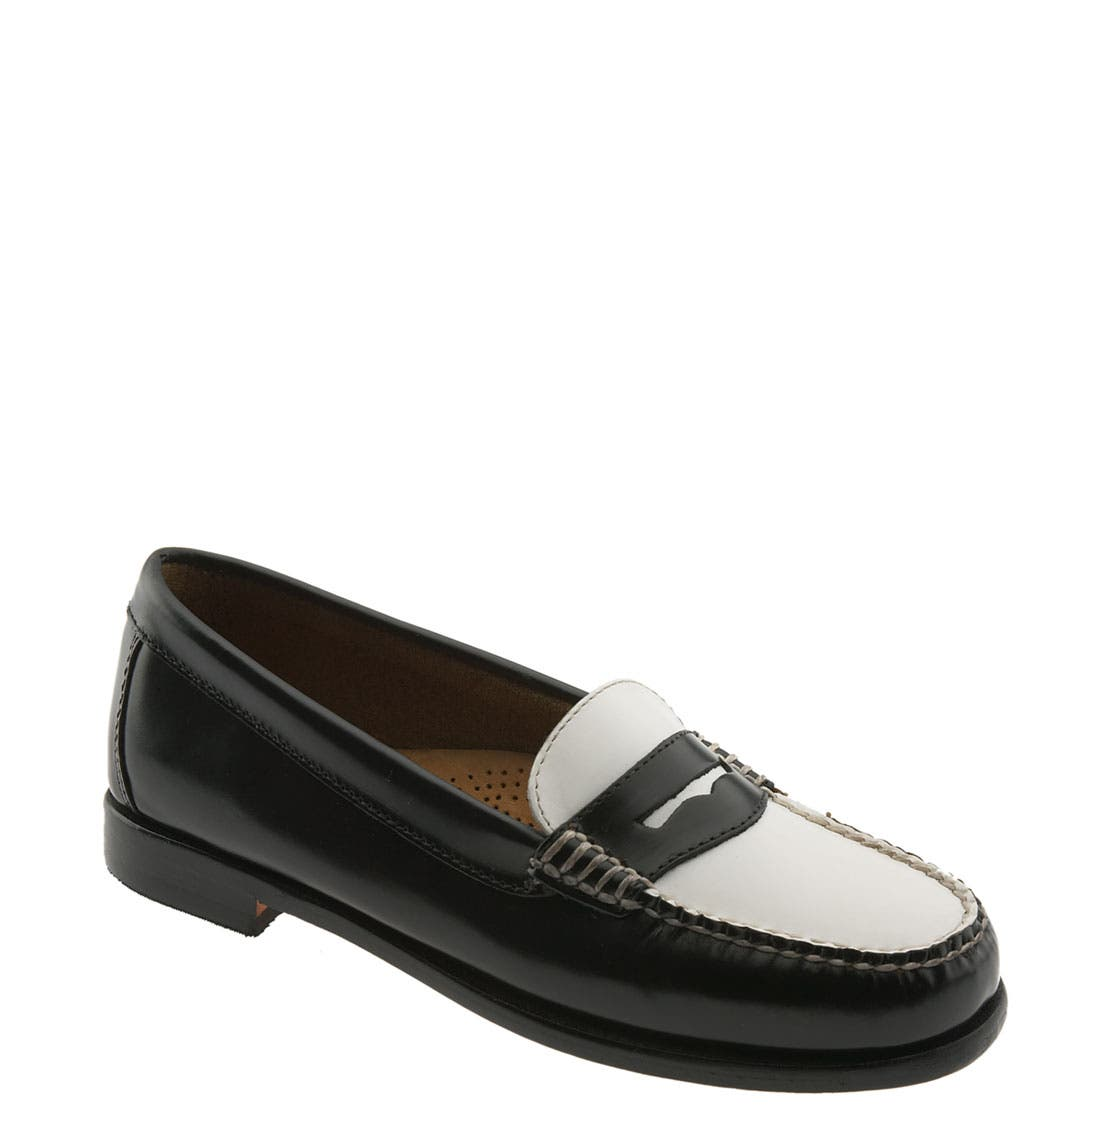 Main Image - G.H. Bass & Co. 'Wayfarer' Loafer (Women)